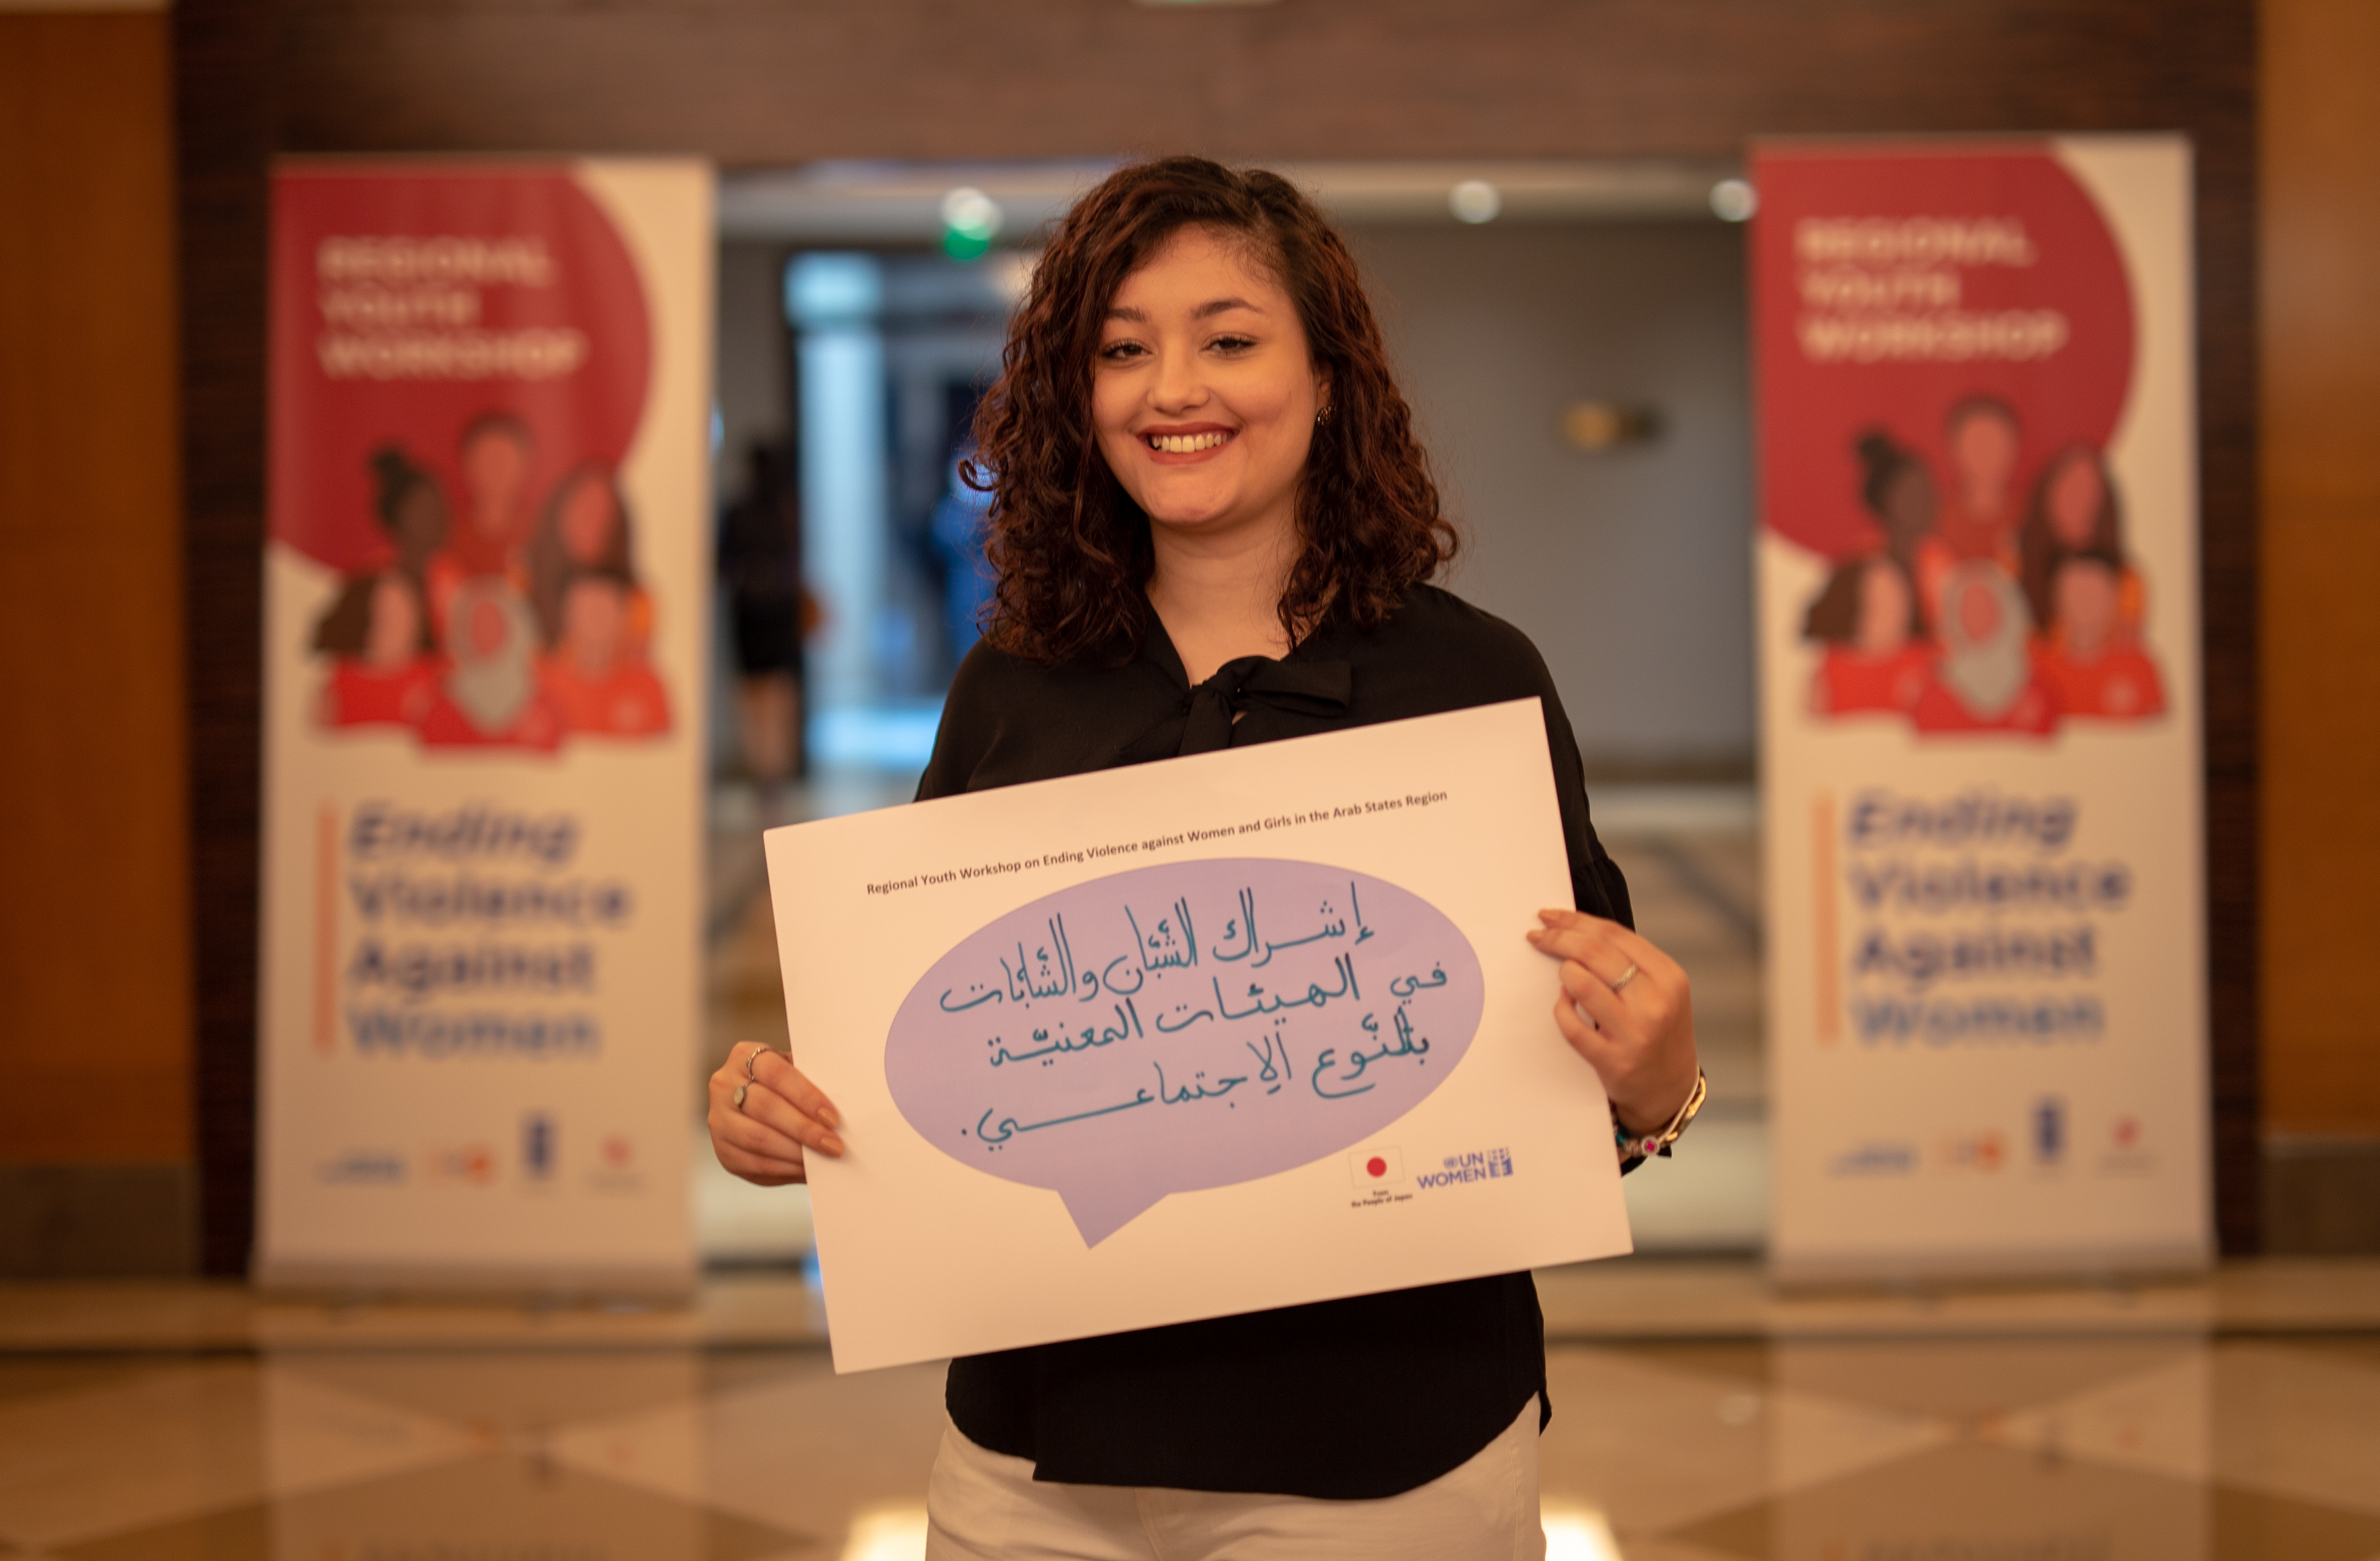 """In the words of Aisha Altubuly: """"Youth can bring bigger influence if we are more empowered and supported"""""""